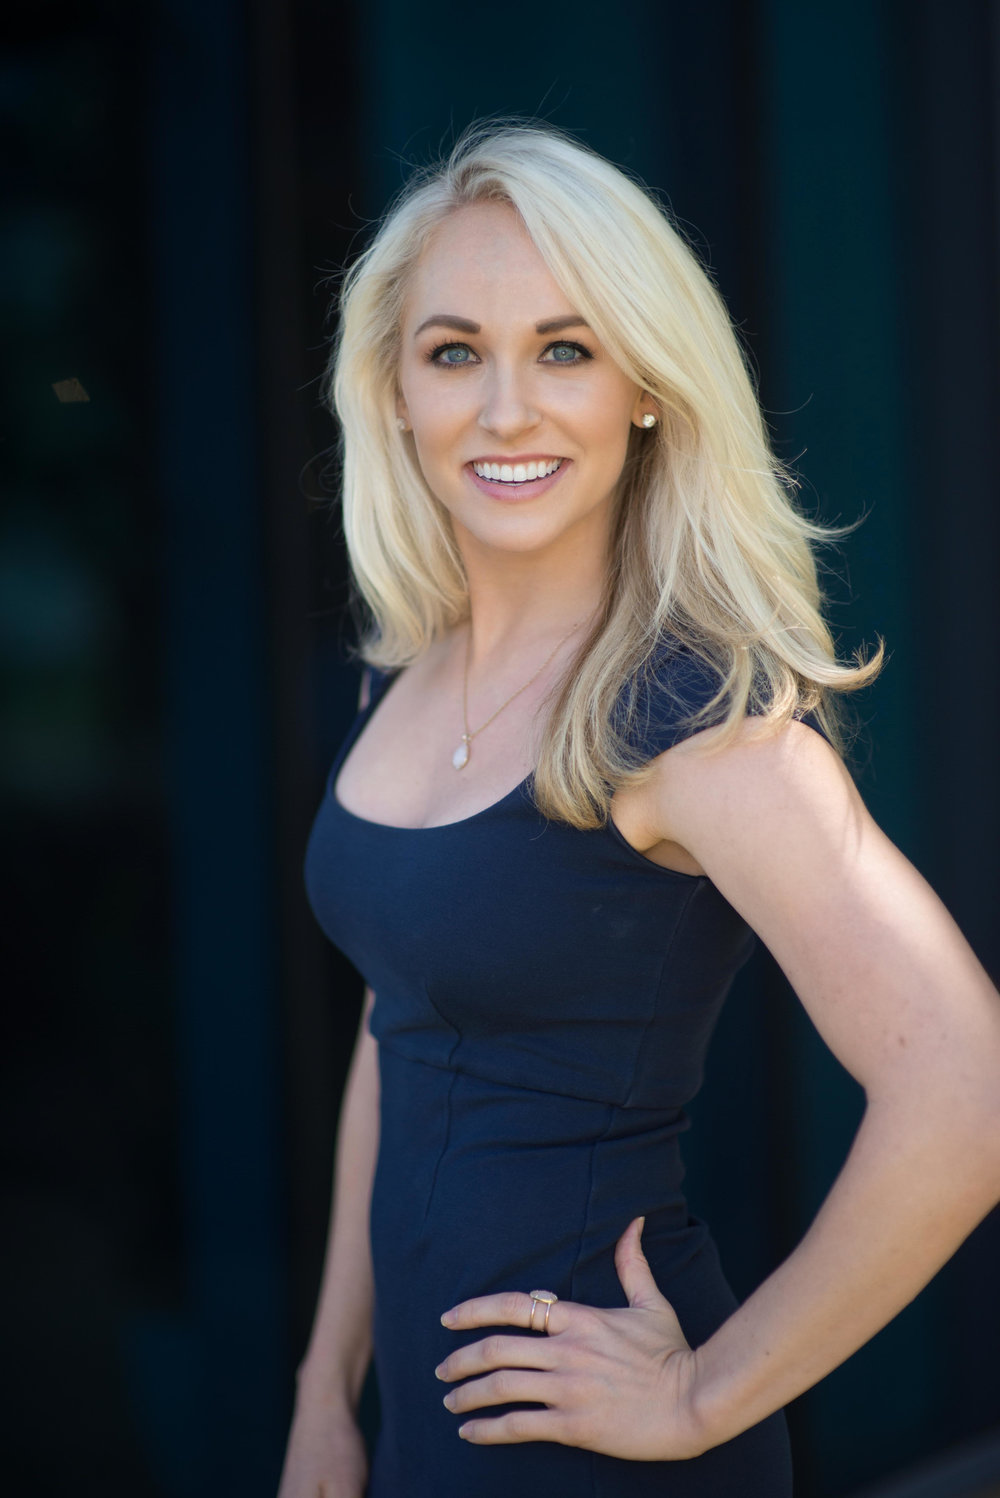 "Laura Lucky   While real estate is in her blood, her passion for helping others is truly what drives Laura Lucky's success. Having earned her Arizona Real Estate License at just 18 years old, Laura knew at a young age that joining her parents, Matt and Lisa Lucky, in the family real estate business was not simply her path of choice, but somewhat of a calling. Shortly after obtaining her real estate license, Laura graduated from Arizona State University with a Bachelor of Science degree in Marketing and International Business. Laura's proficiency in marketing has become a hallmark of The Lucky Team and continues to help drive The Luckys to higher degrees of success. In 2015, Laura was singled out as the ""Emerging Realtor of the Year"" and has been recognized as a ""Top 40 Under 40"" for the last four years by the Scottsdale Area Association of Realtors. In her non-working hours she has a passion for helping animals, volunteers at Christ Church of the Valley, and much-loved yoga, hot barre or pilates class."